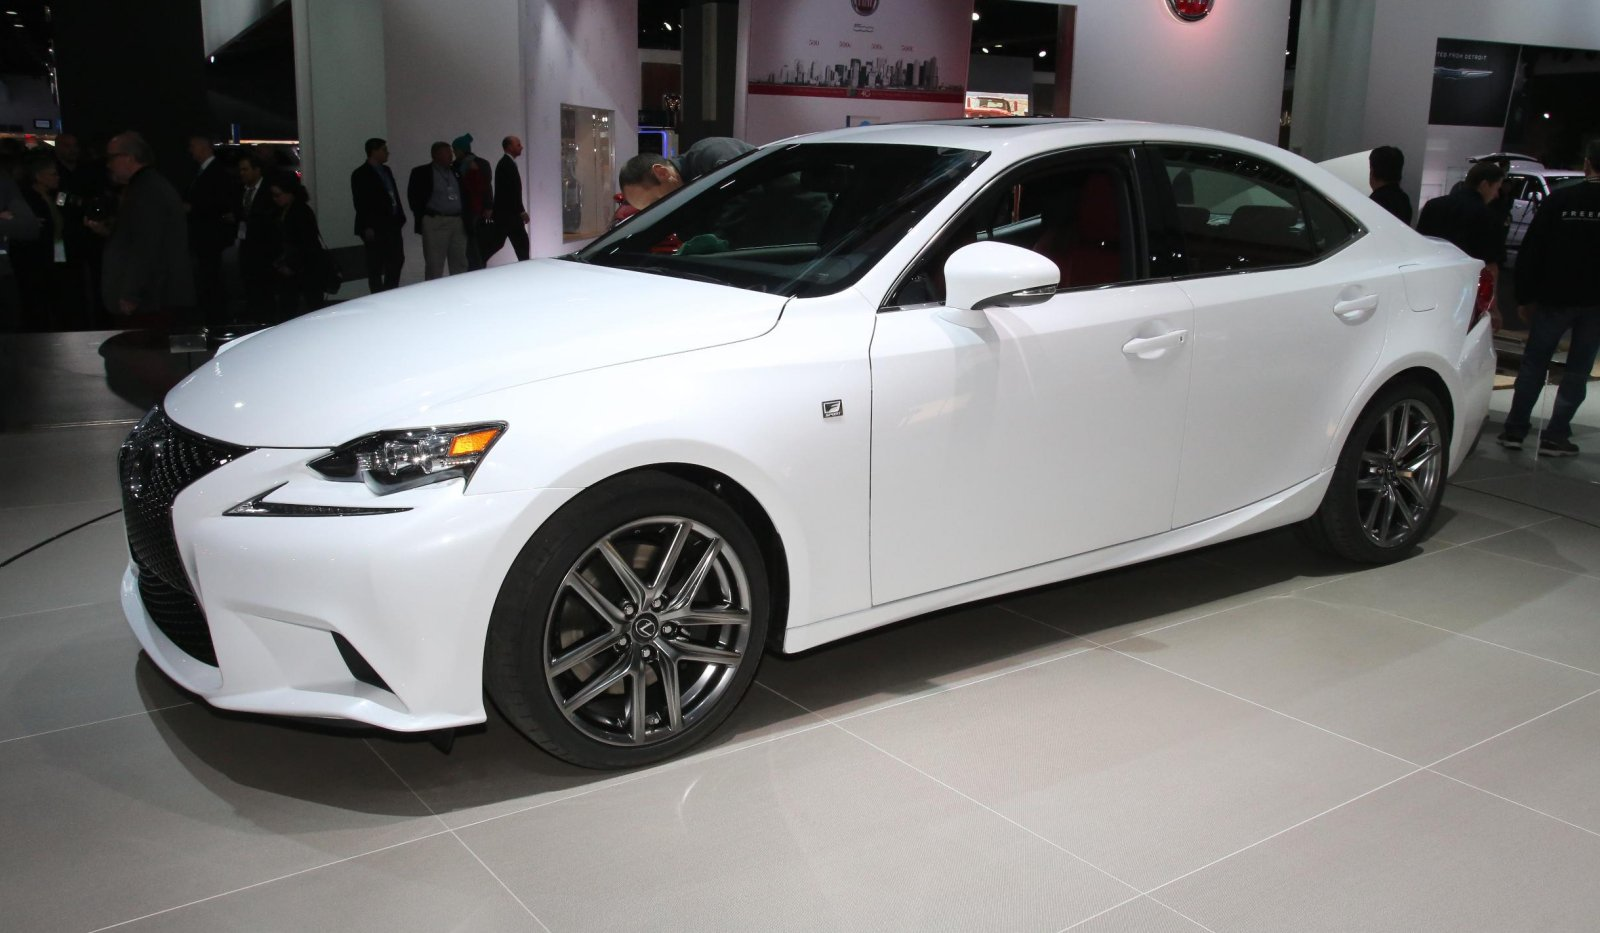 2013 Lexus Is F #22